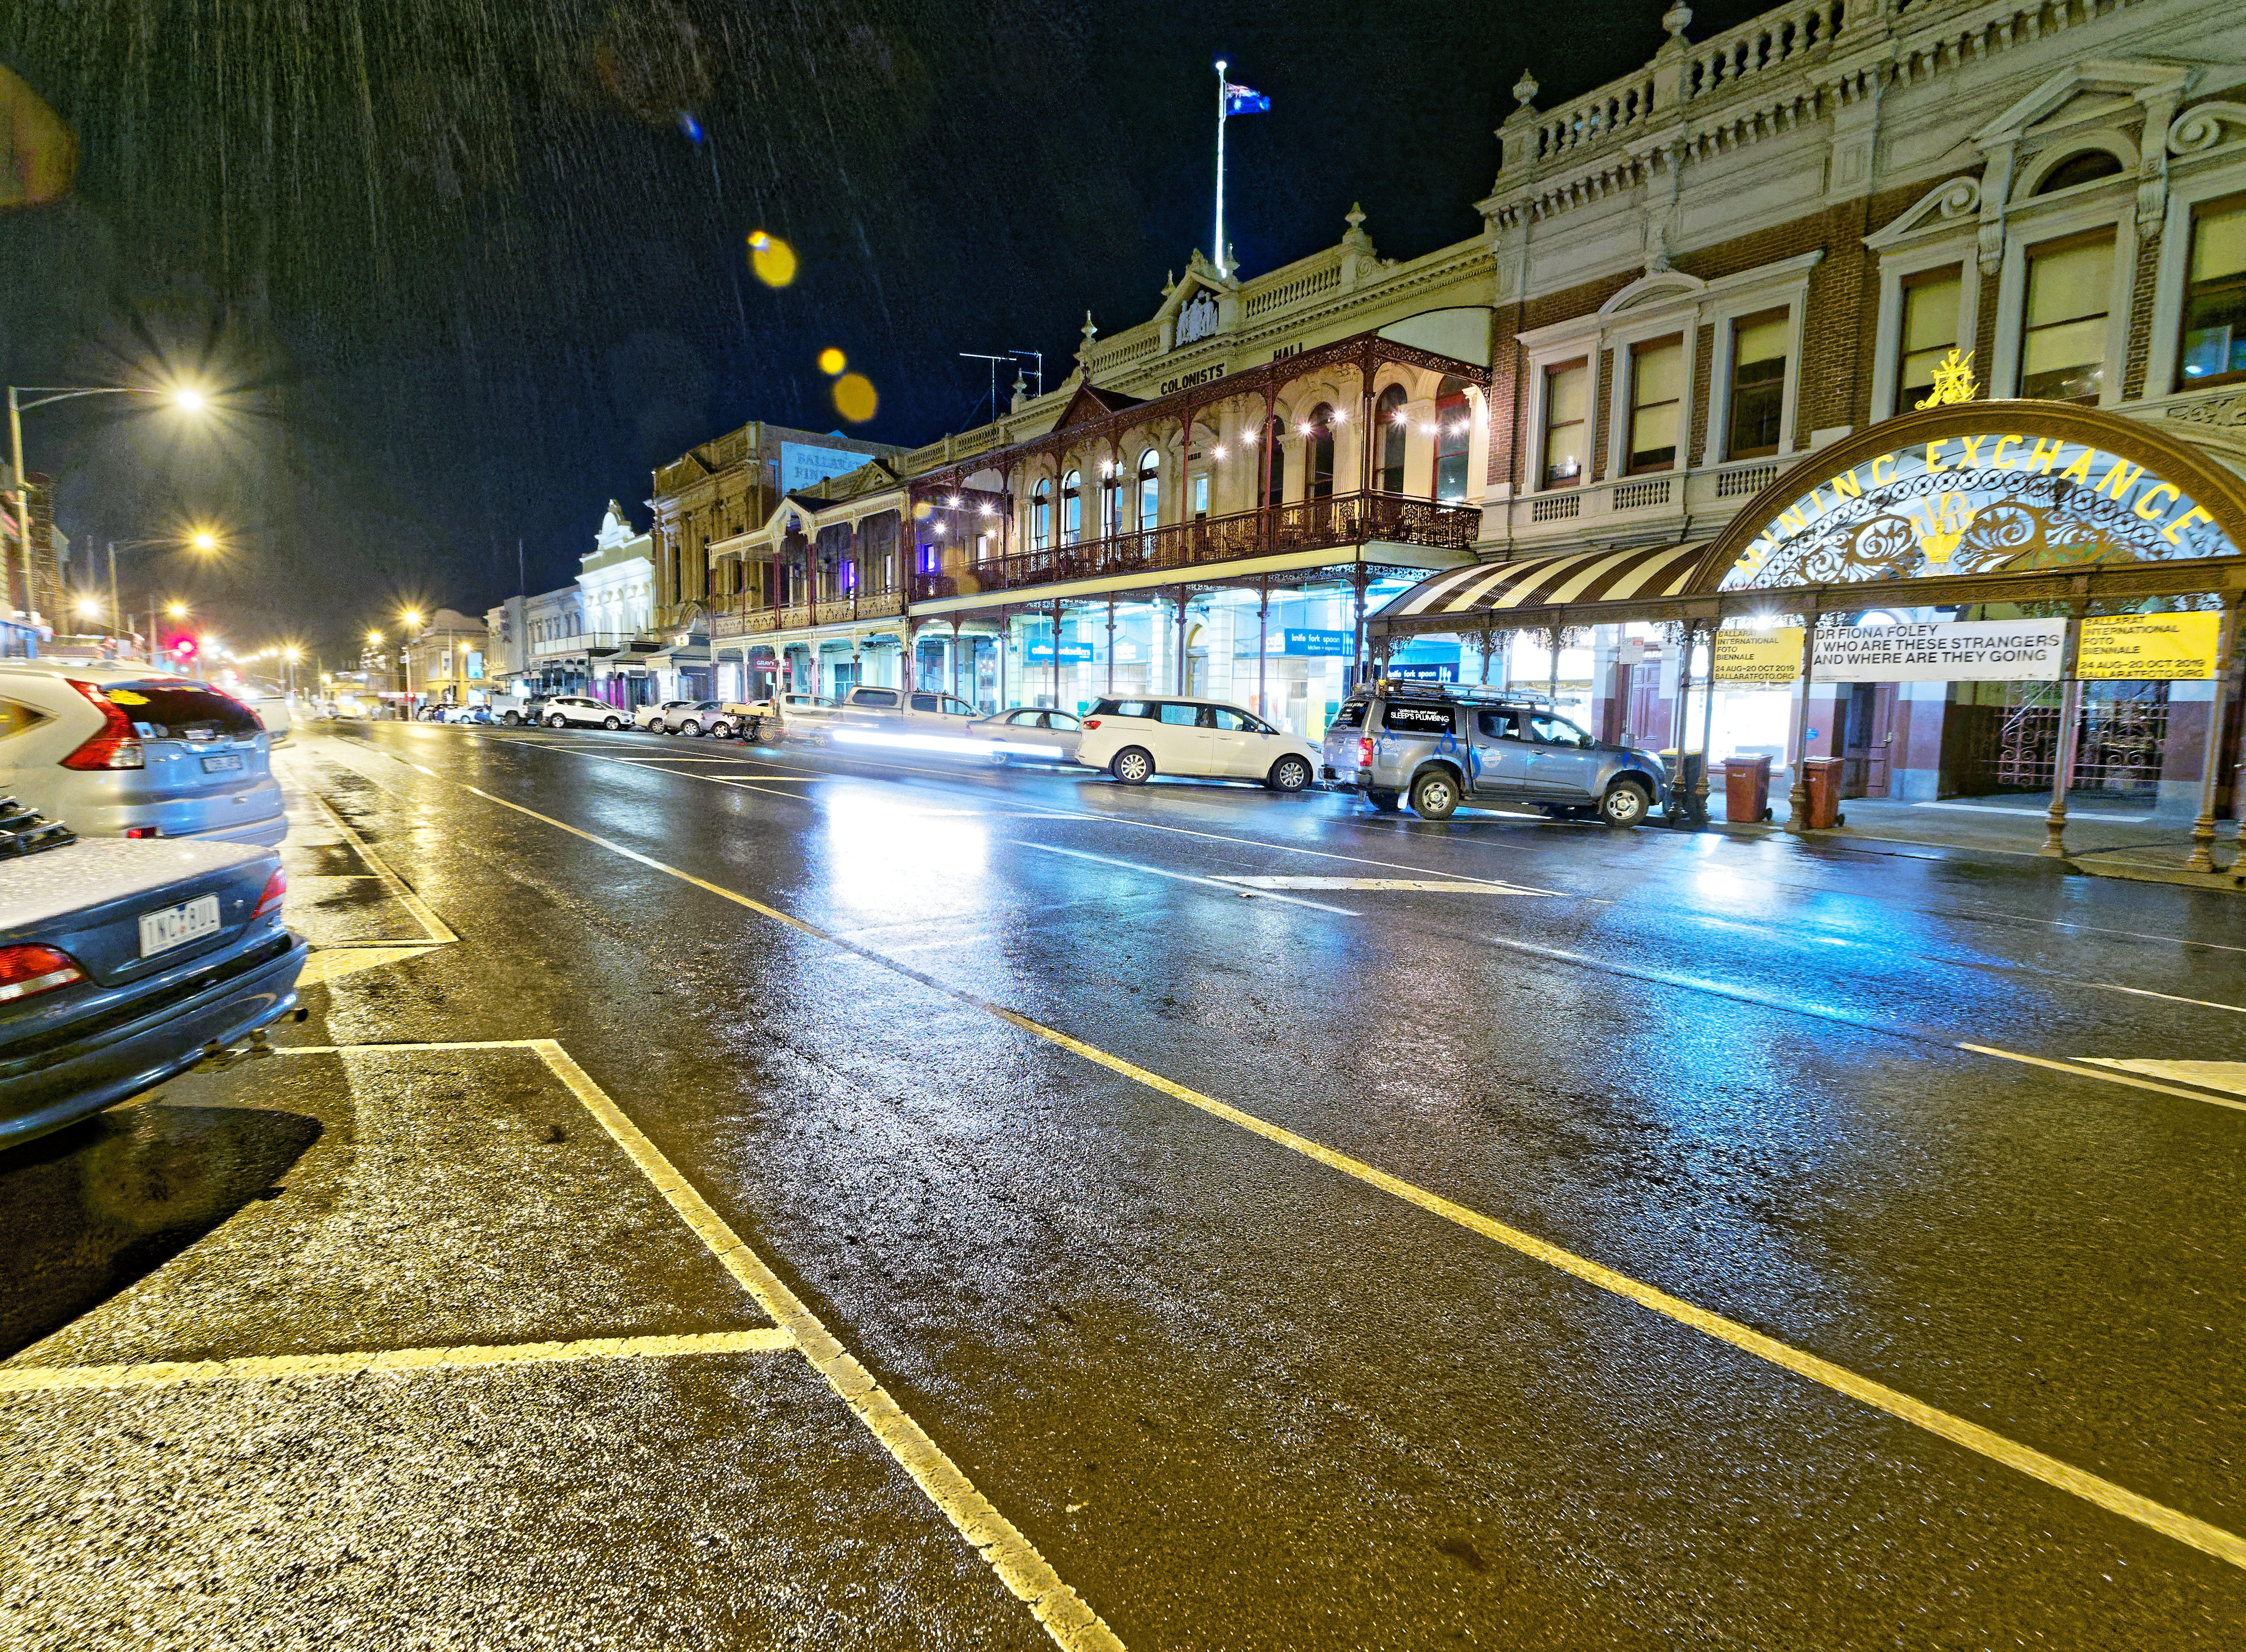 Ballarat-by-night-4.jpeg